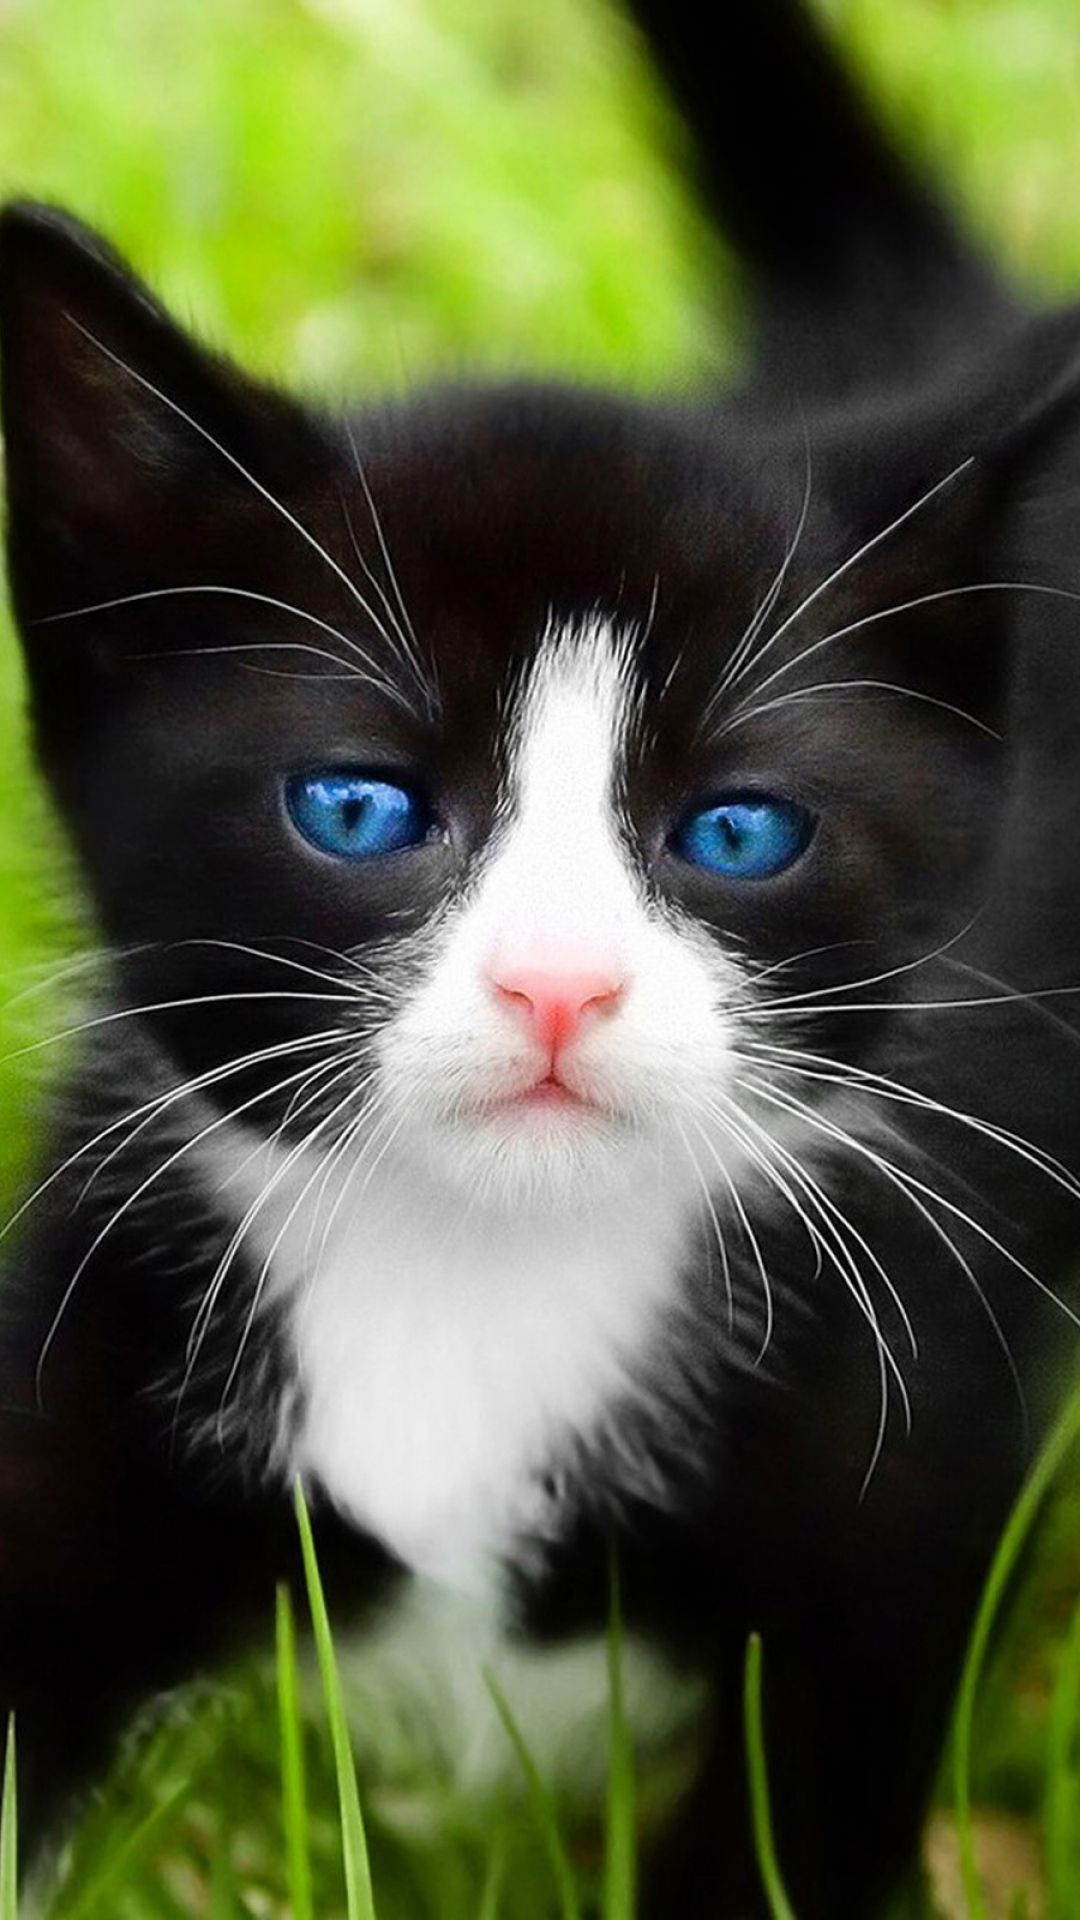 I Will Take This Blue Eyed Baby Tux Beautiful Cats Kittens Cutest Black And White Kittens